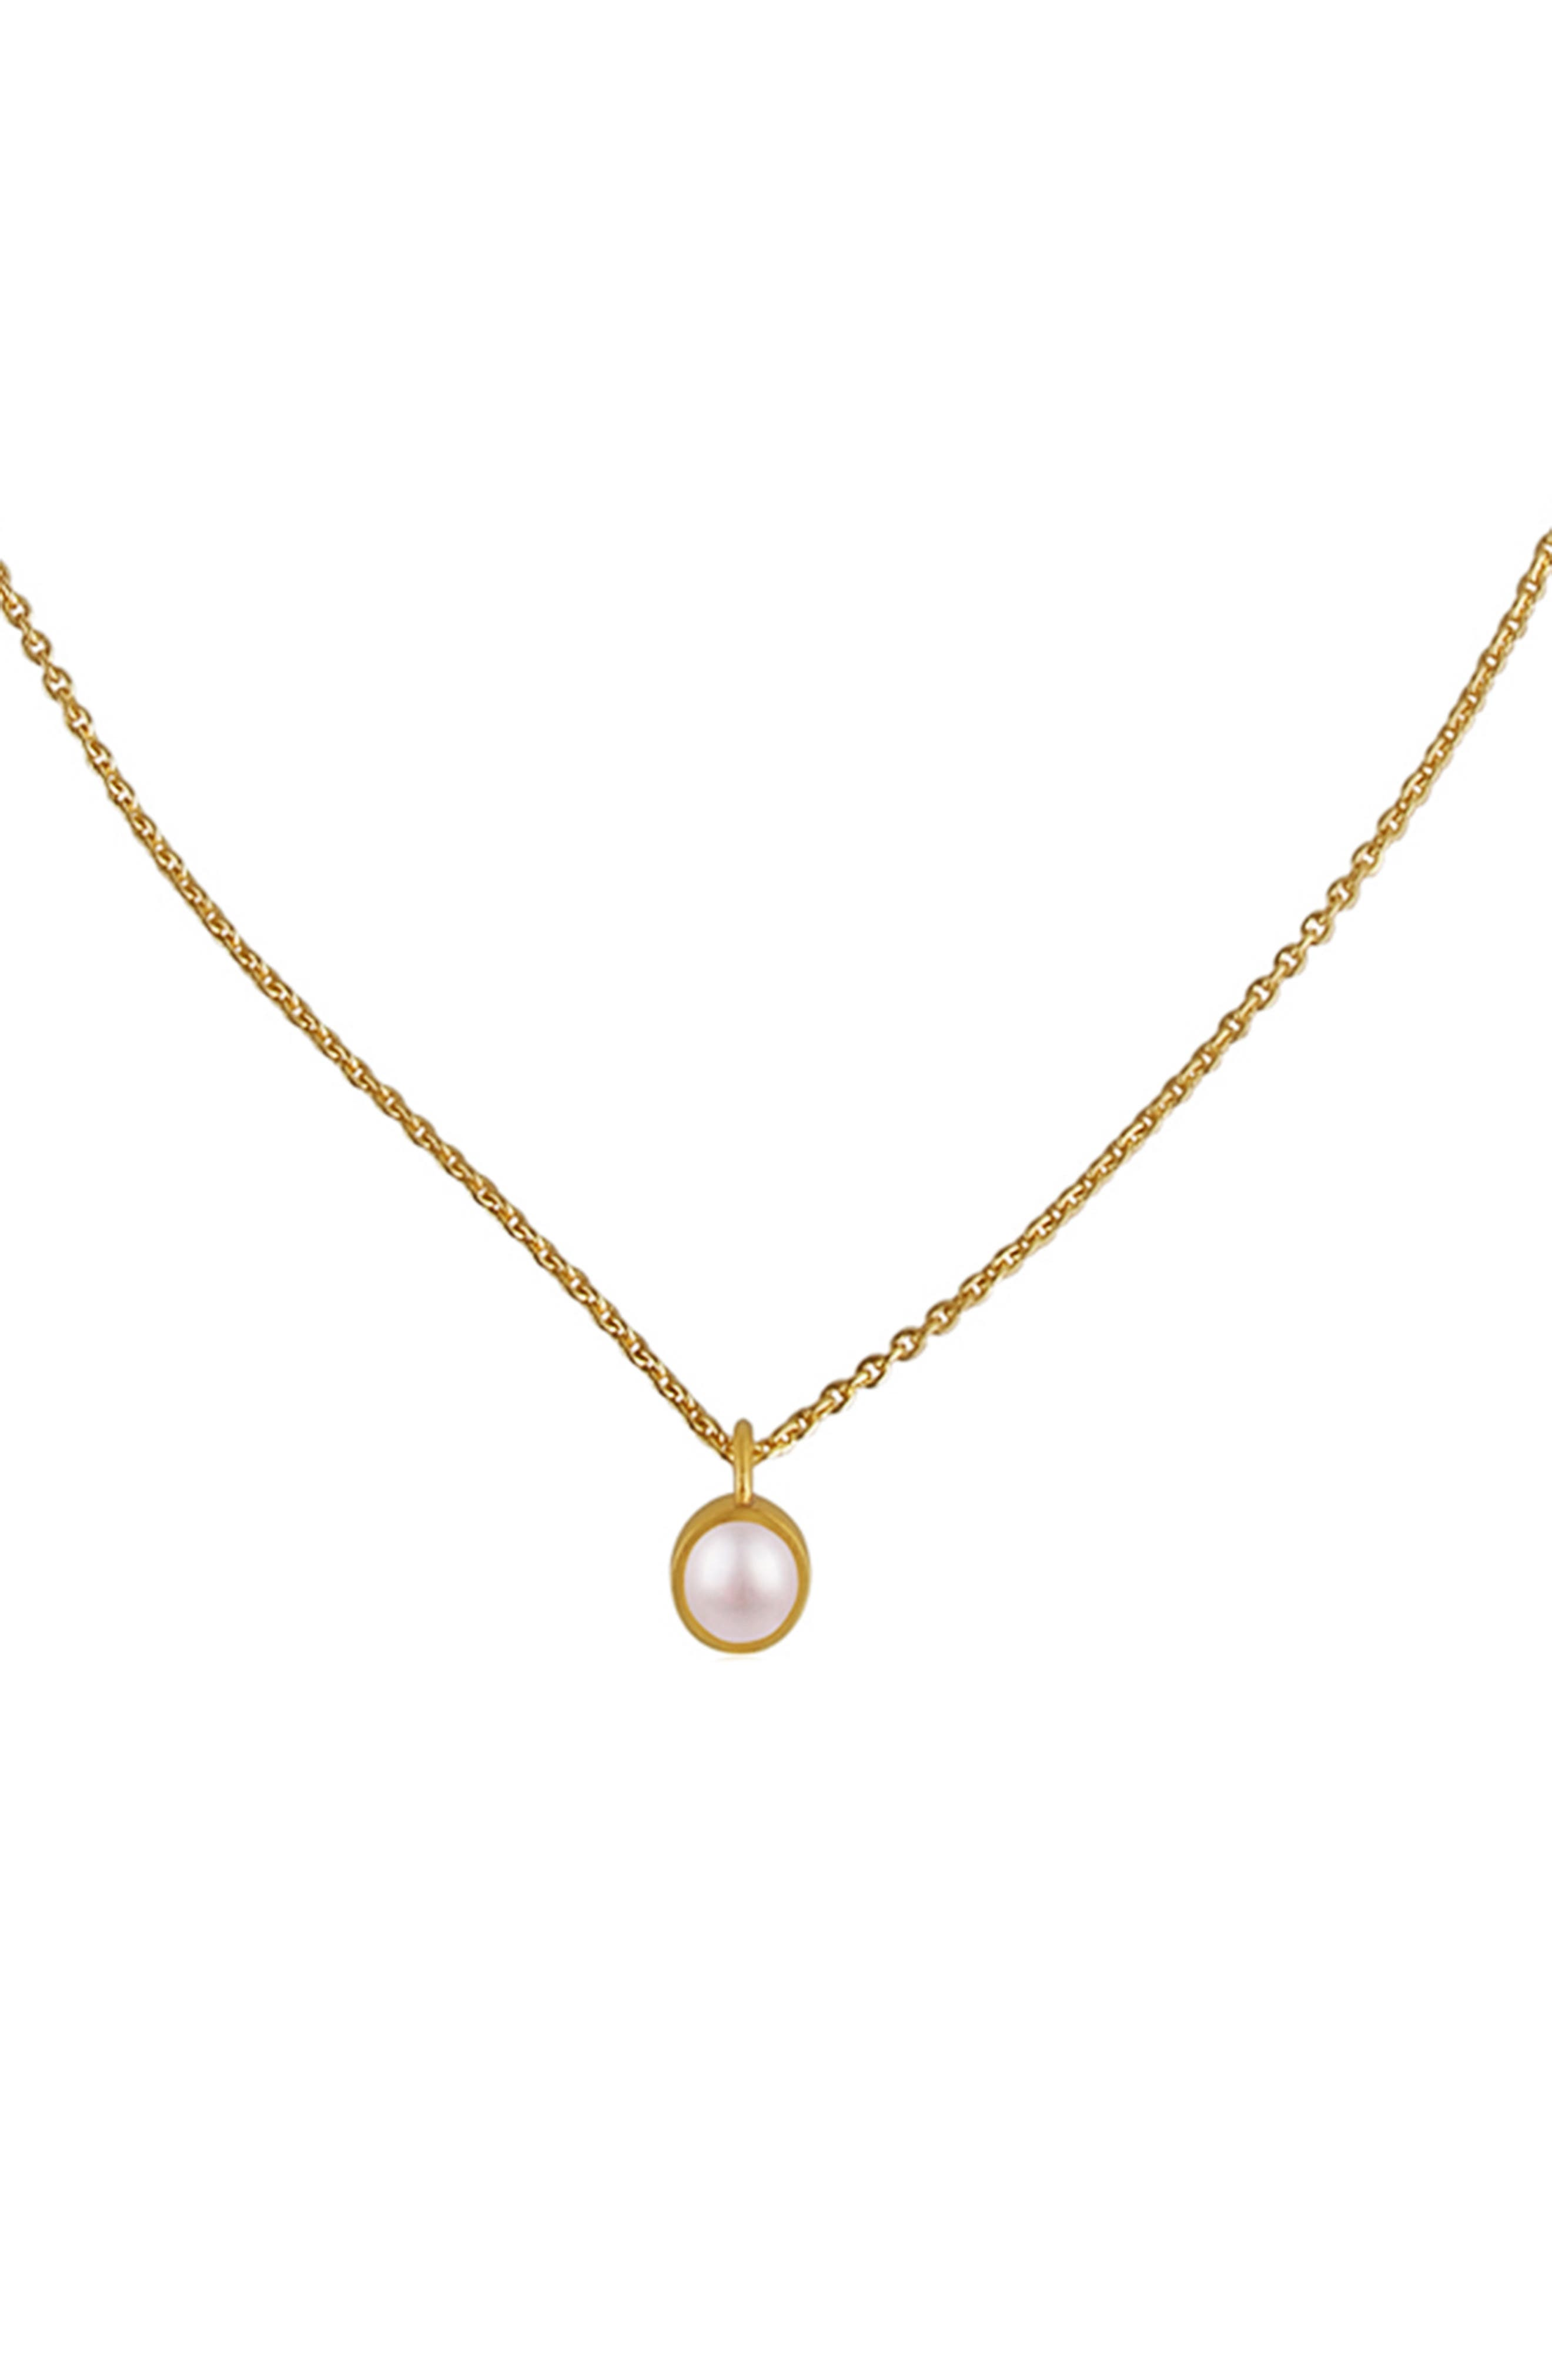 Dainty Cultured Pearl Pendant Necklace